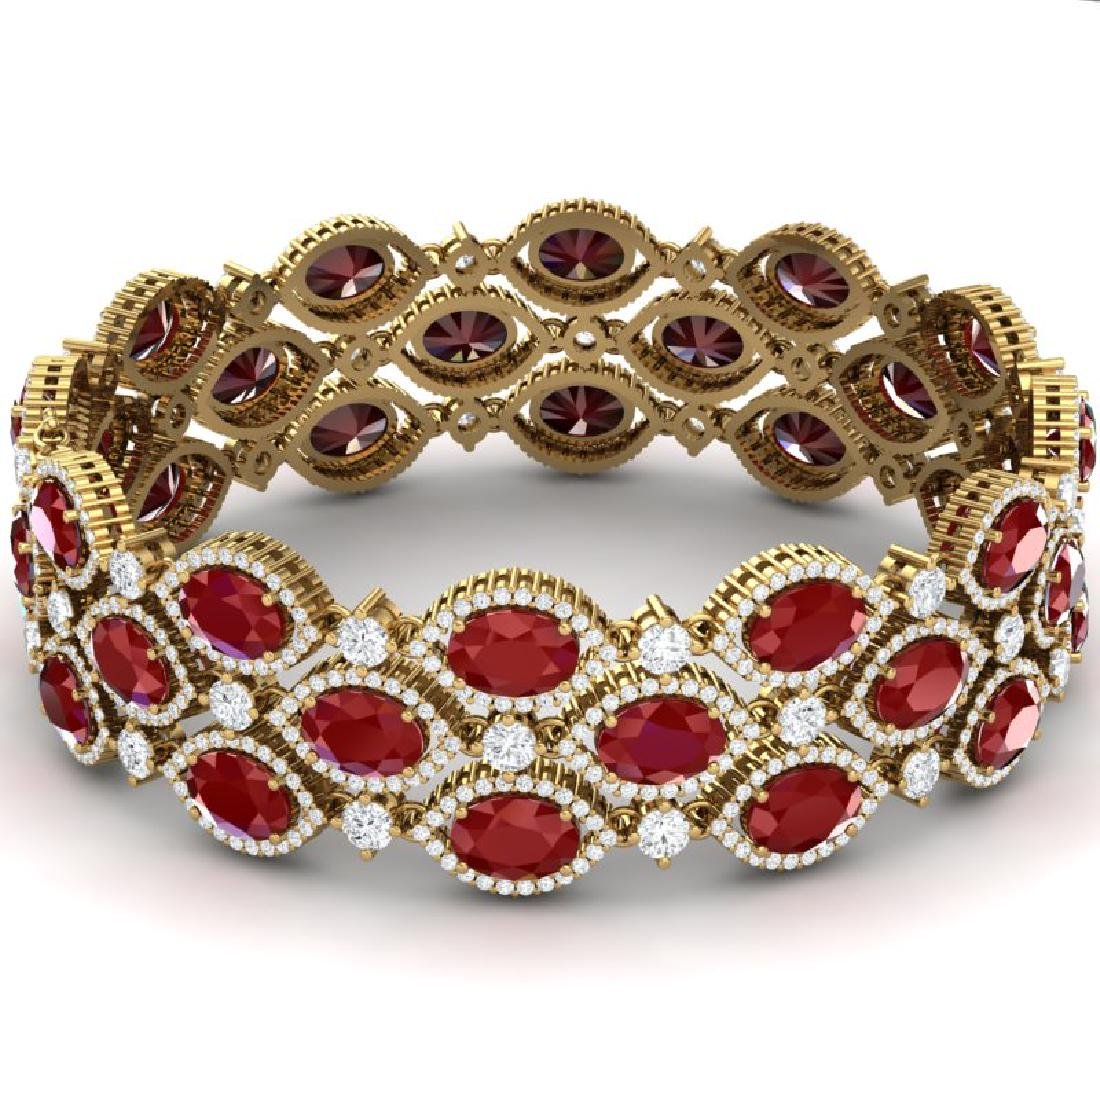 47.84 CTW Royalty Ruby & VS Diamond Bracelet 18K Yellow - 3